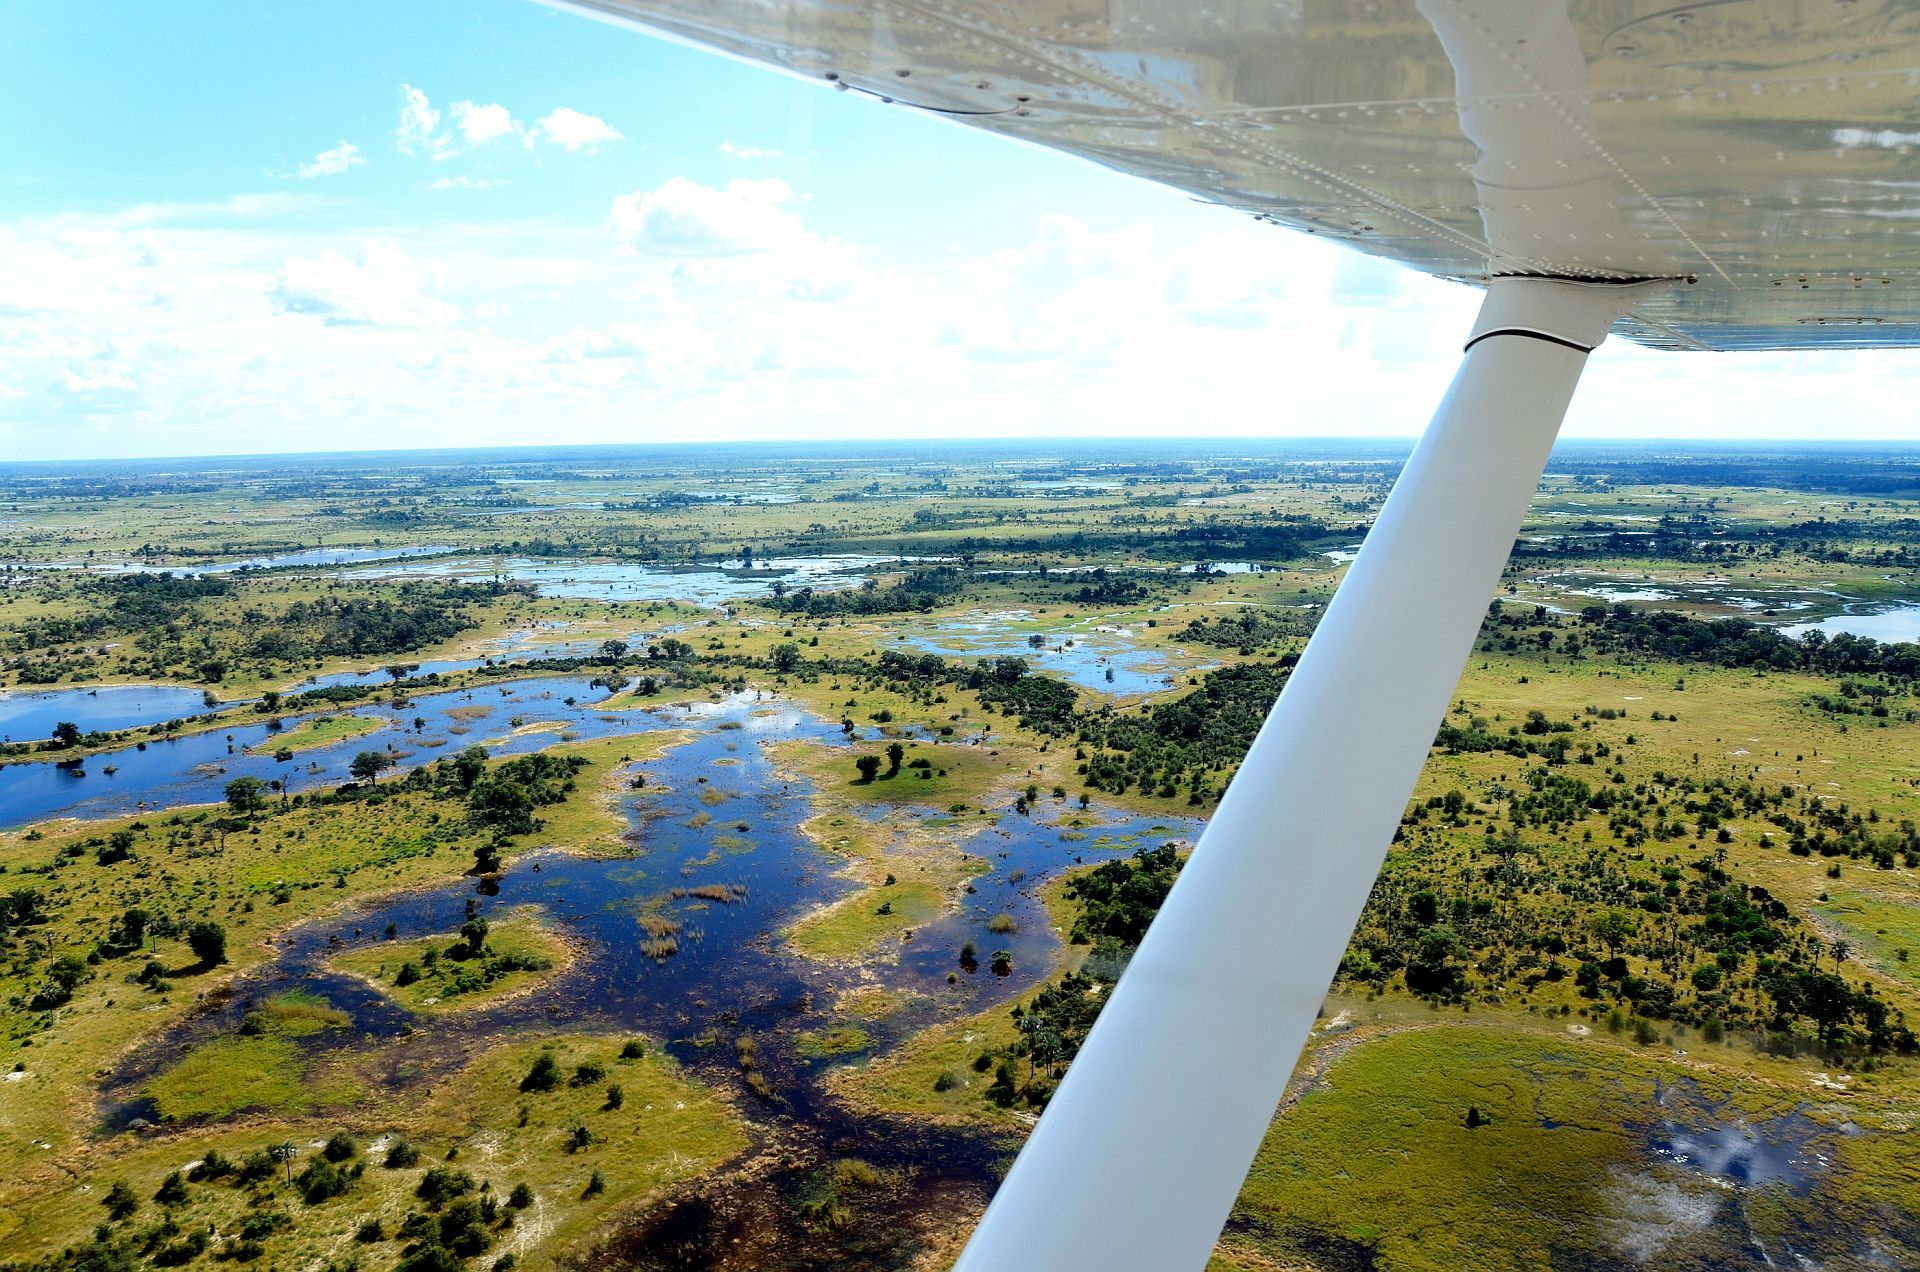 Day: 6 & 7 OKAVANGO DELTA - The Okavango Delta is one of the very few major interior delta systems that do not flow into a sea or ocean, with a wetland system that is almost intact.It lies  in north-west of Botswana, comprising permanent marshlands and seasonally flooded plains.